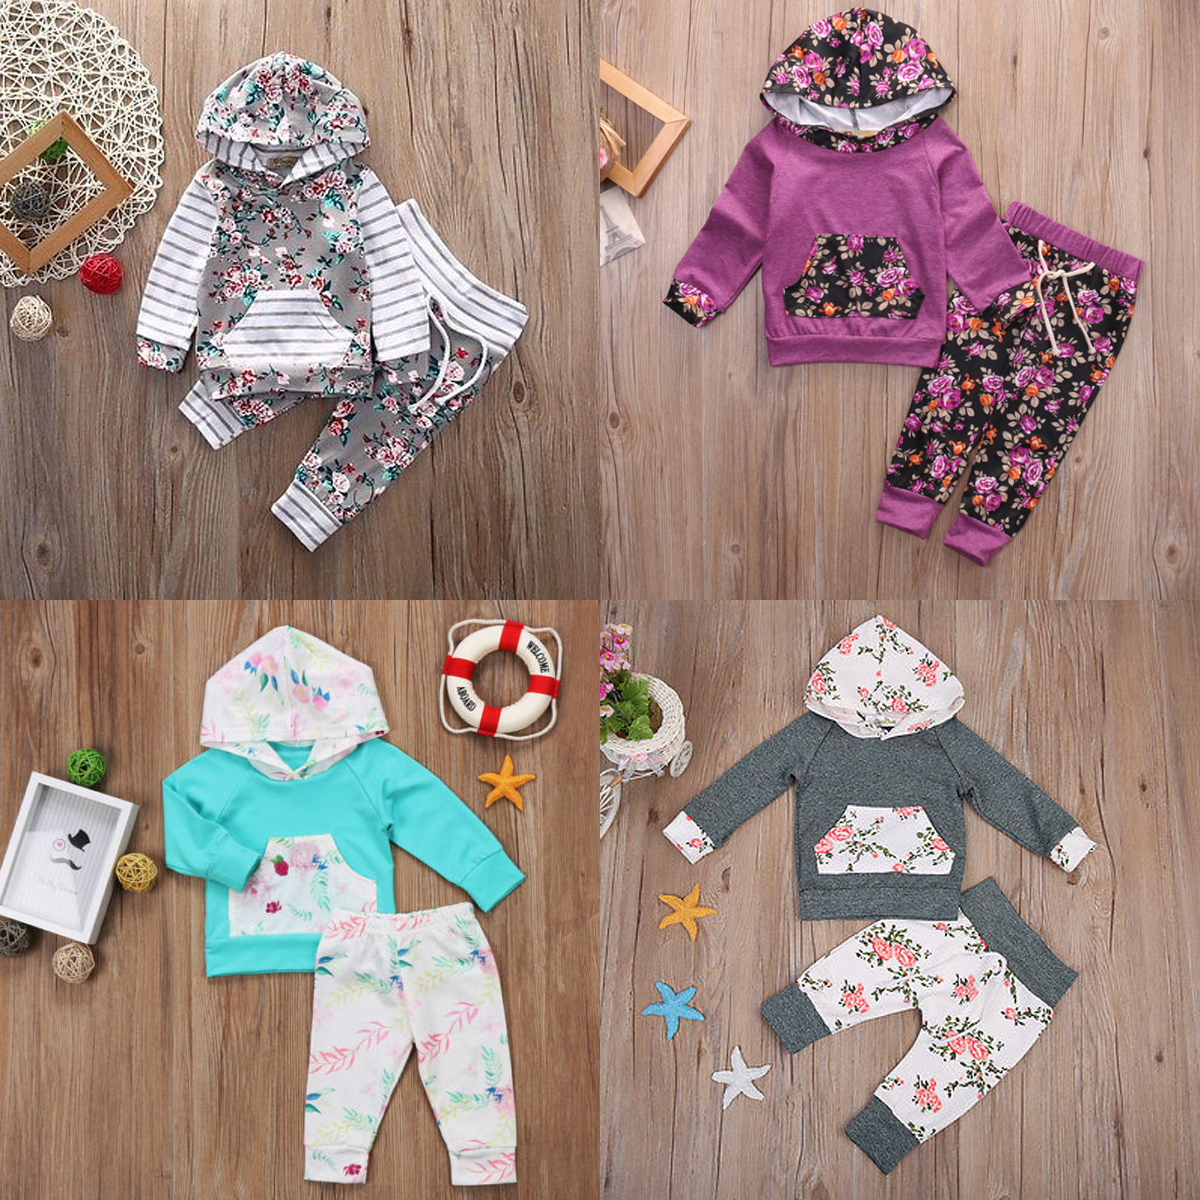 USA Newborn Boy Girl Floral  Hooded Tops T-shirt+Pants Sweatsuit Outfits Clothes